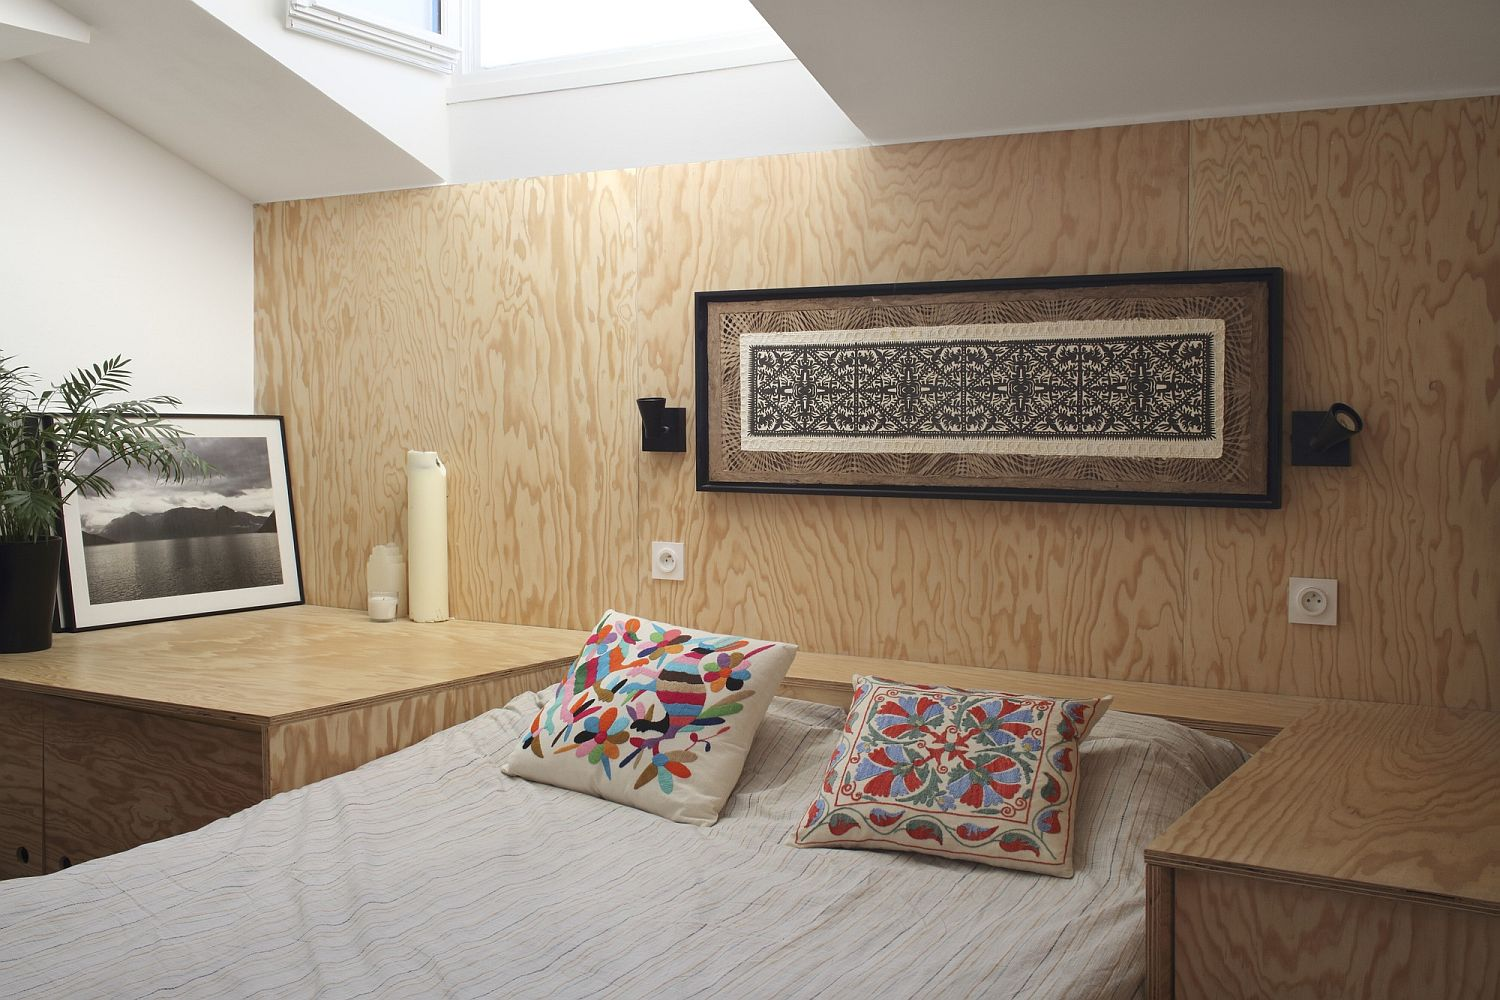 Custom wooden platform morphs to create different decor pieces throughout the house